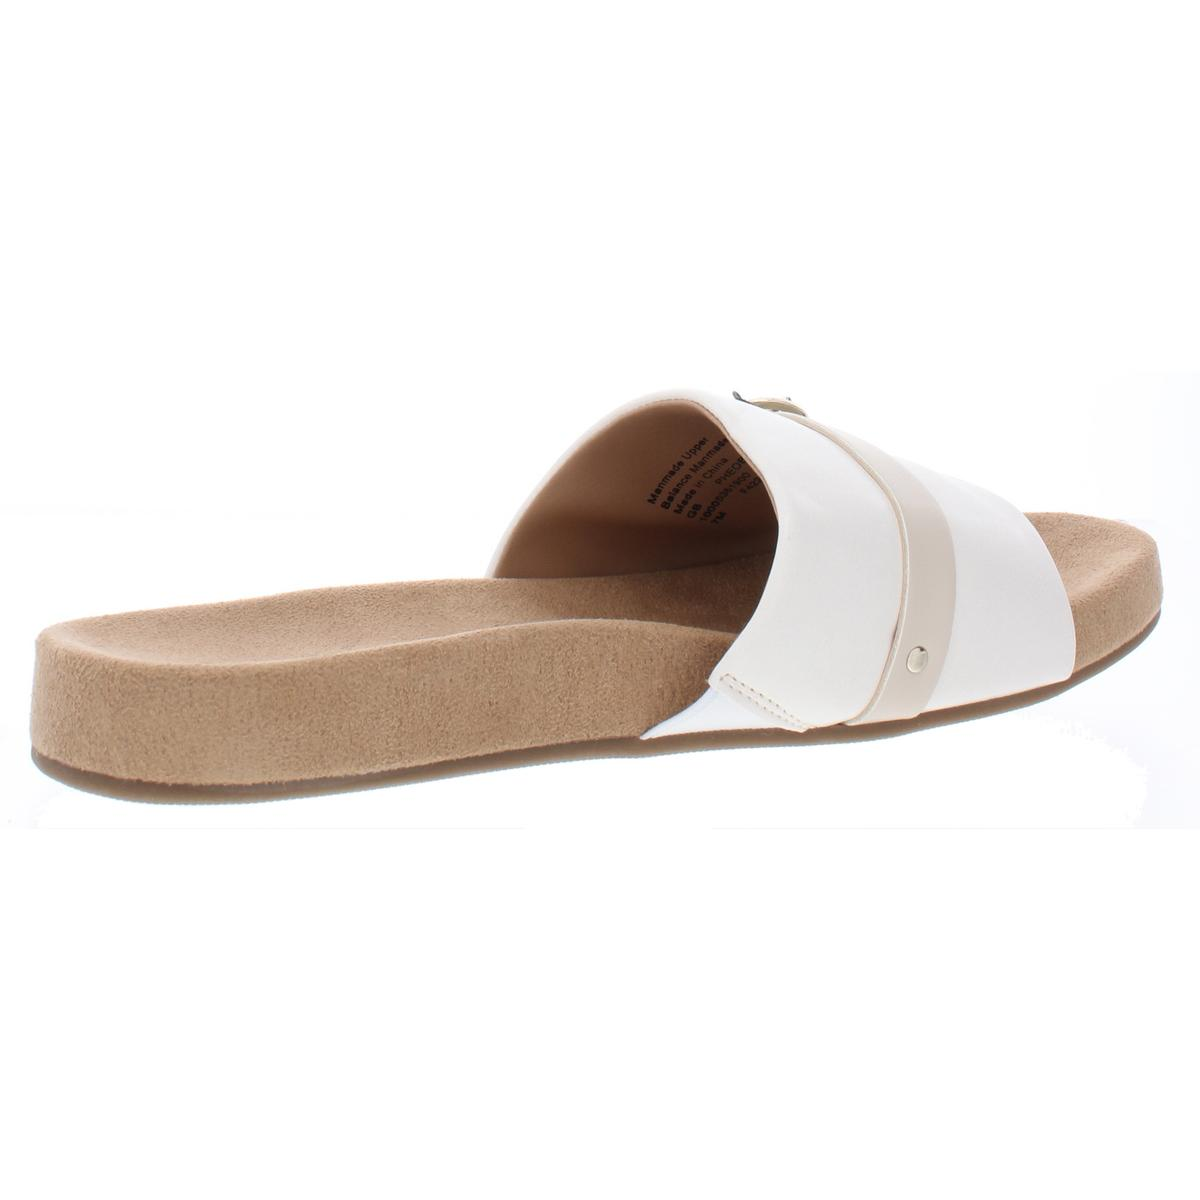 Giani Bernini Womens Pheobee Open Toe Slip On Flat Sandals Shoes BHFO 8960